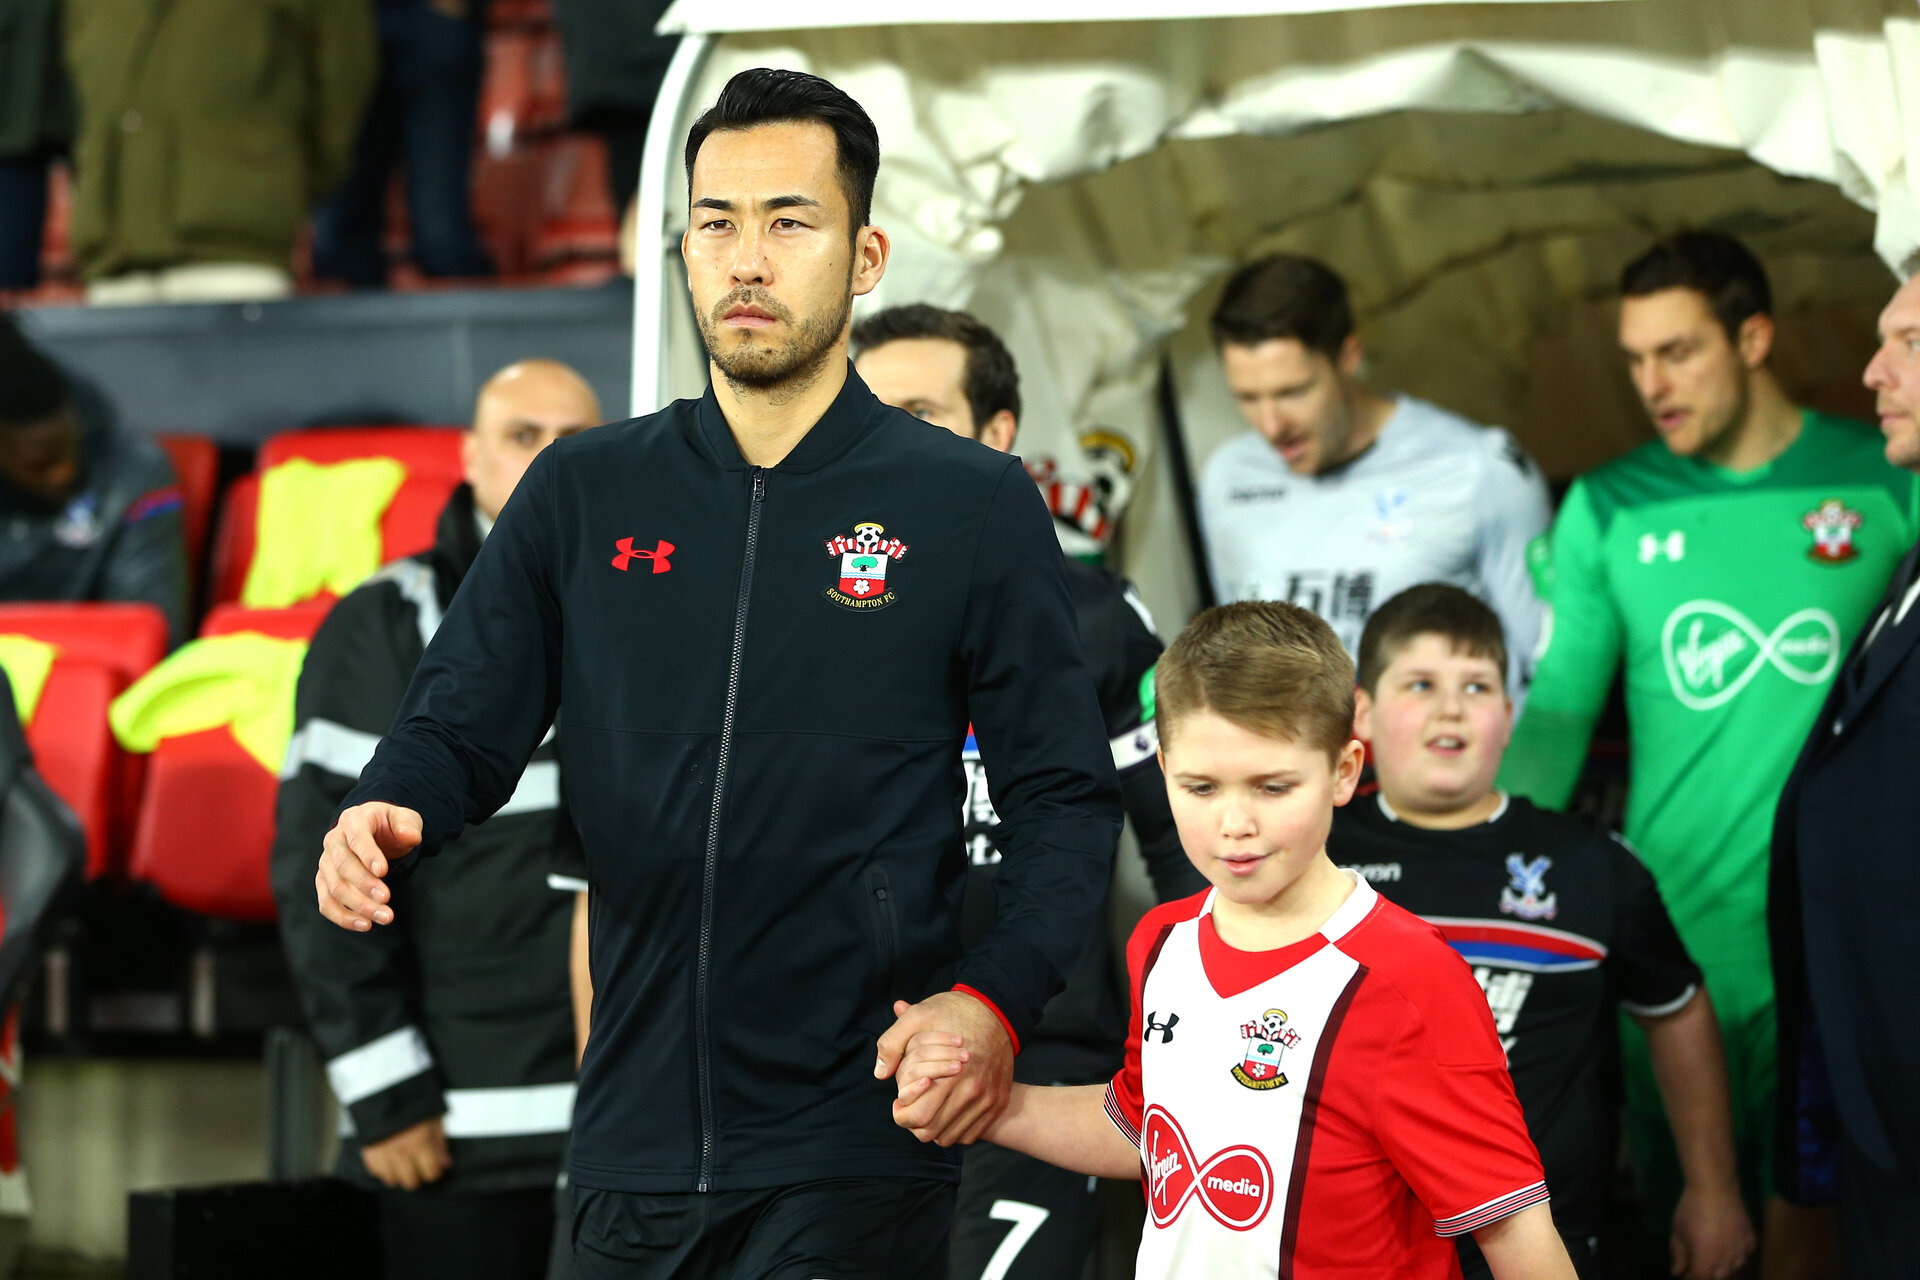 SOUTHAMPTON, ENGLAND - JANUARY 02: LtoR Maya Yoshida and Southampton FCÕs young mascot ahead of the Premier League match between Southampton and Crystal Palace at St Mary's Stadium on January 2, 2018 in Southampton, England. (Photo by James Bridle - Southampton FC/Southampton FC via Getty Images) SOUTHAMPTON, ENGLAND - JANUARY 02: LtoR Maya Yoshida and Southampton FC's young mascot ahead of the Premier League match between Southampton and Crystal Palace at St Mary's Stadium on January 2, 2018 in Southampton, England. (Photo by James Bridle - Southampton FC/Southampton FC via Getty Images)